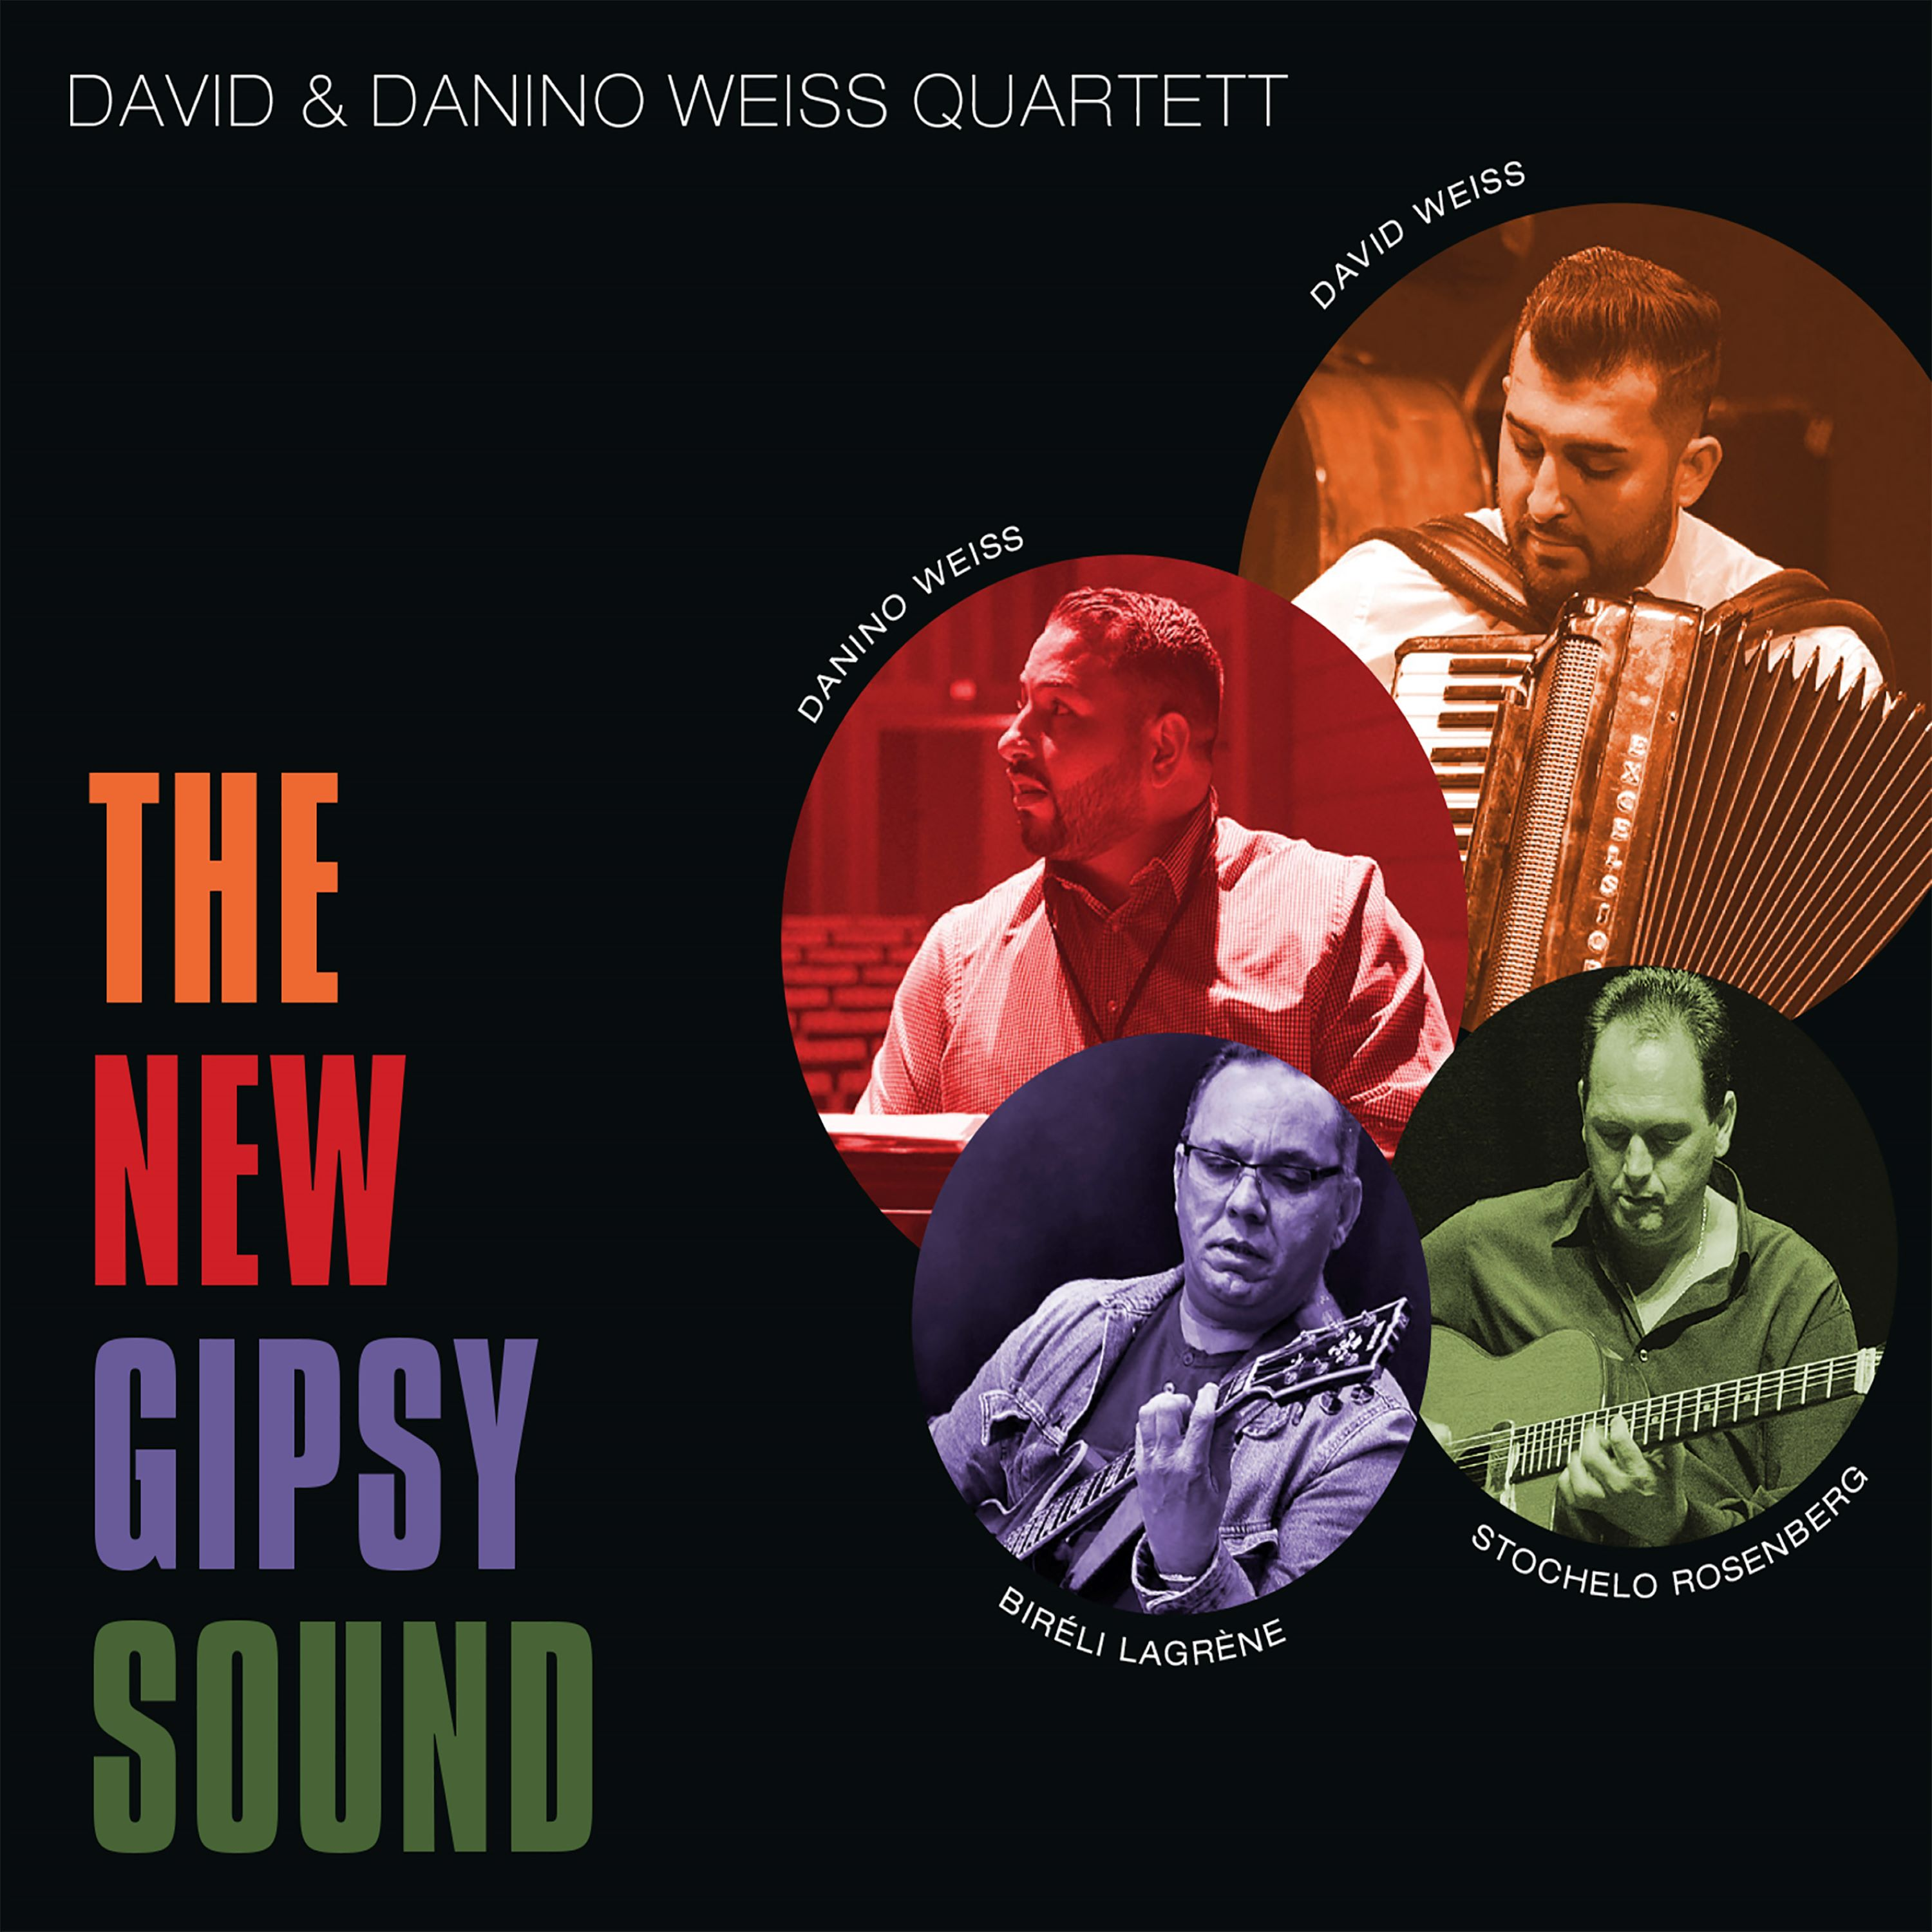 david danino weiss quartett the new gipsy sound